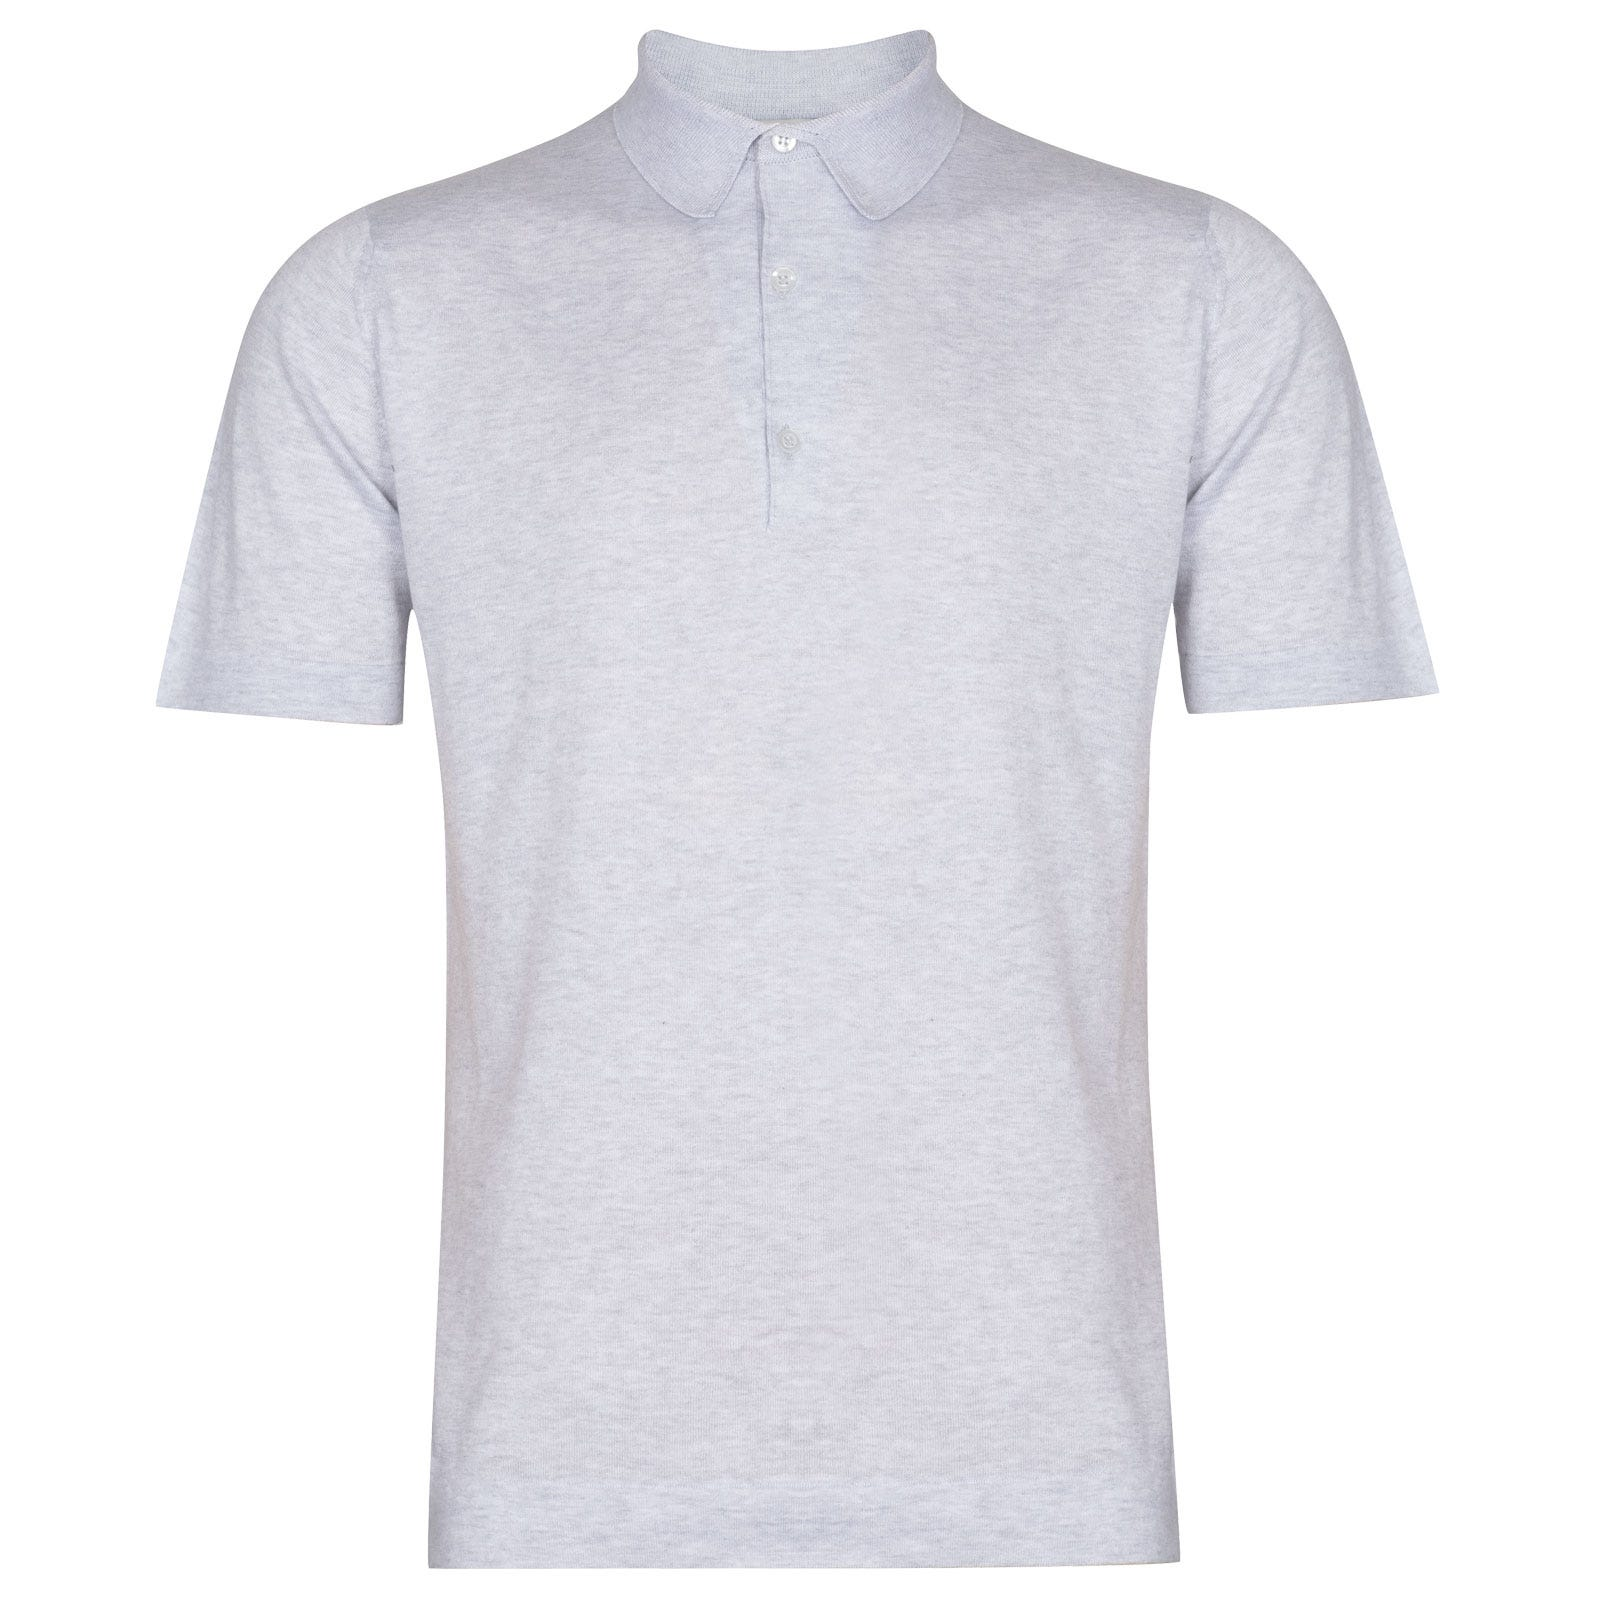 John Smedley Mycroft in Feather Grey Shirt-XLG